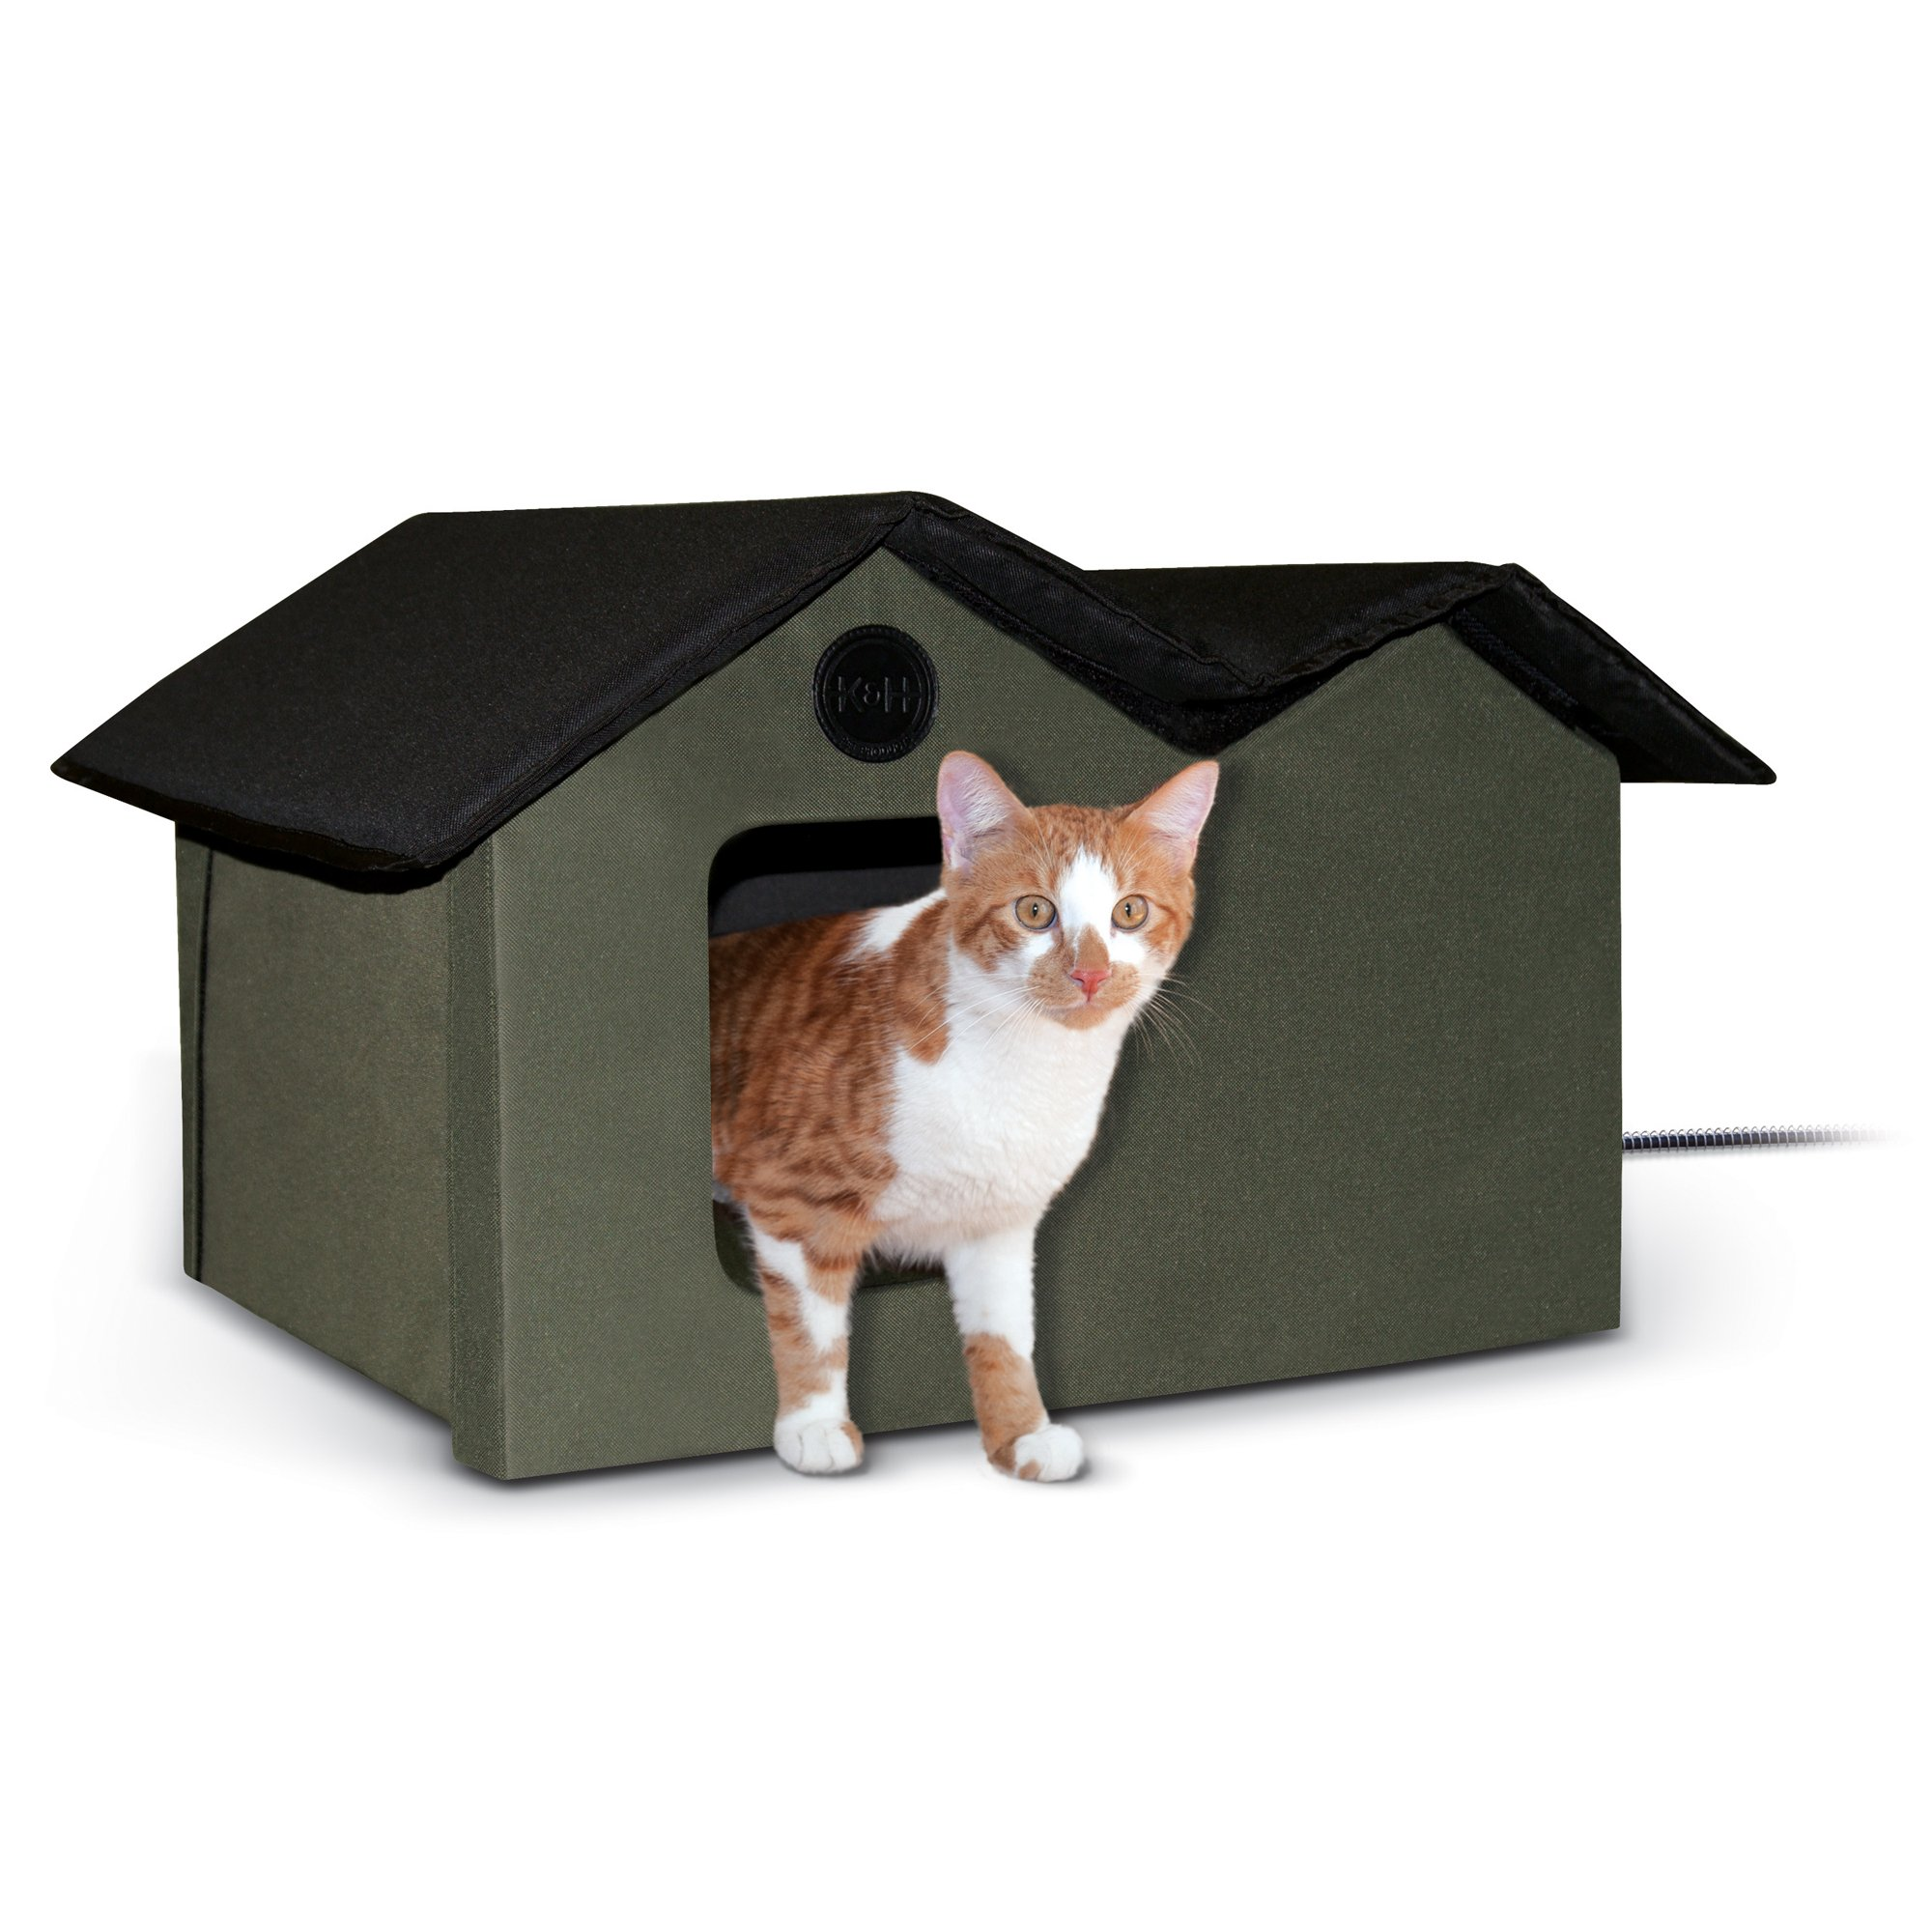 K Amp H Olive And Black Outdoor Heated Cat House Petco